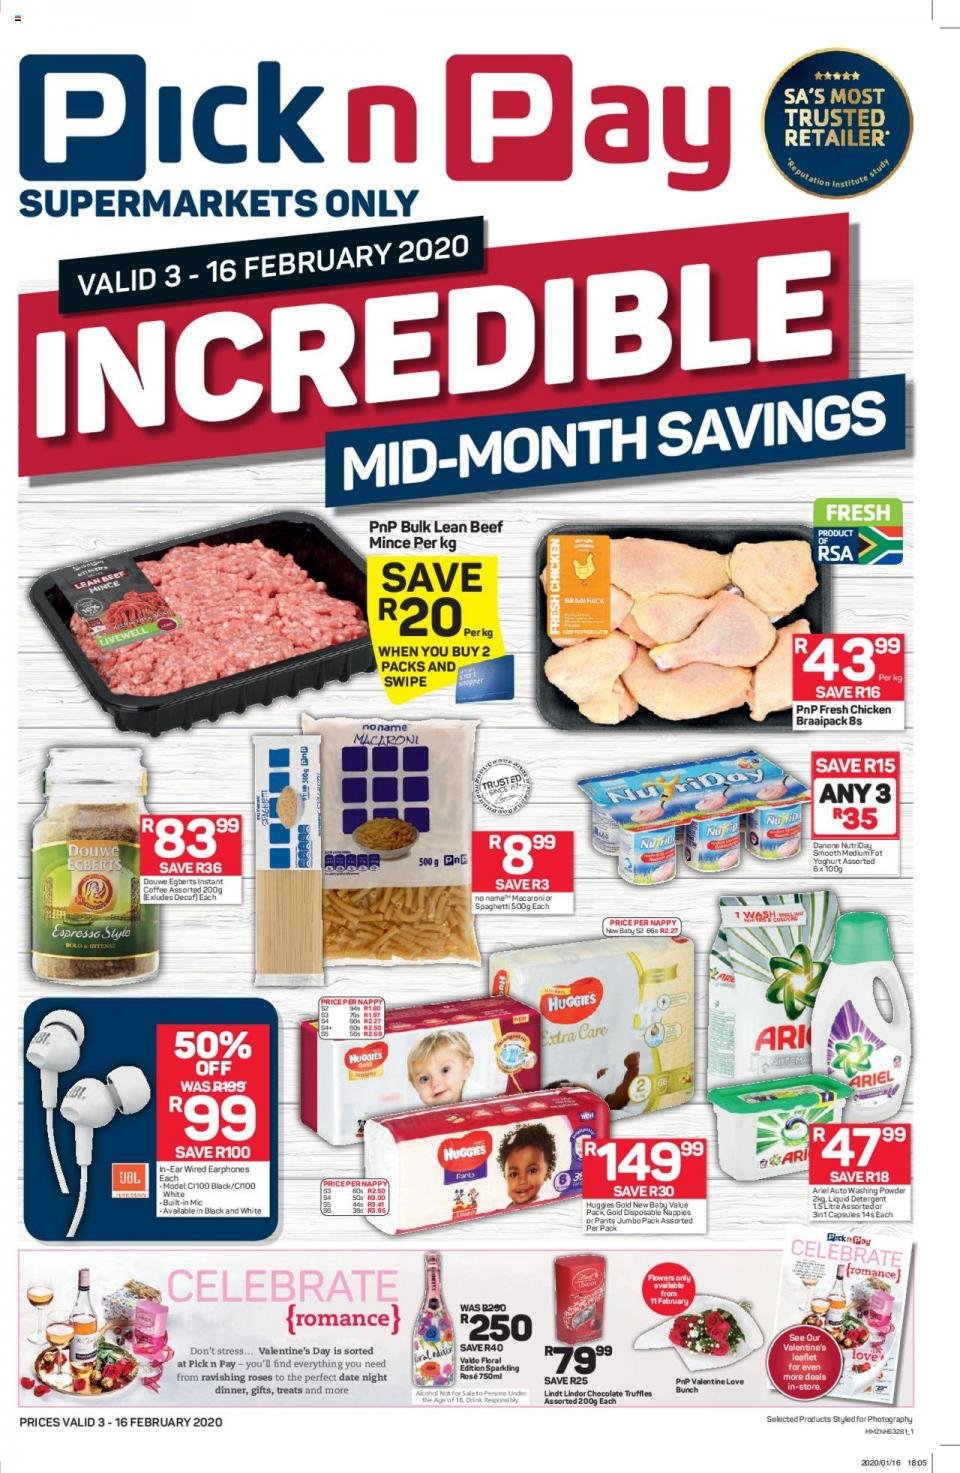 pick n pay specials incredible mid month savings 3 february 2020